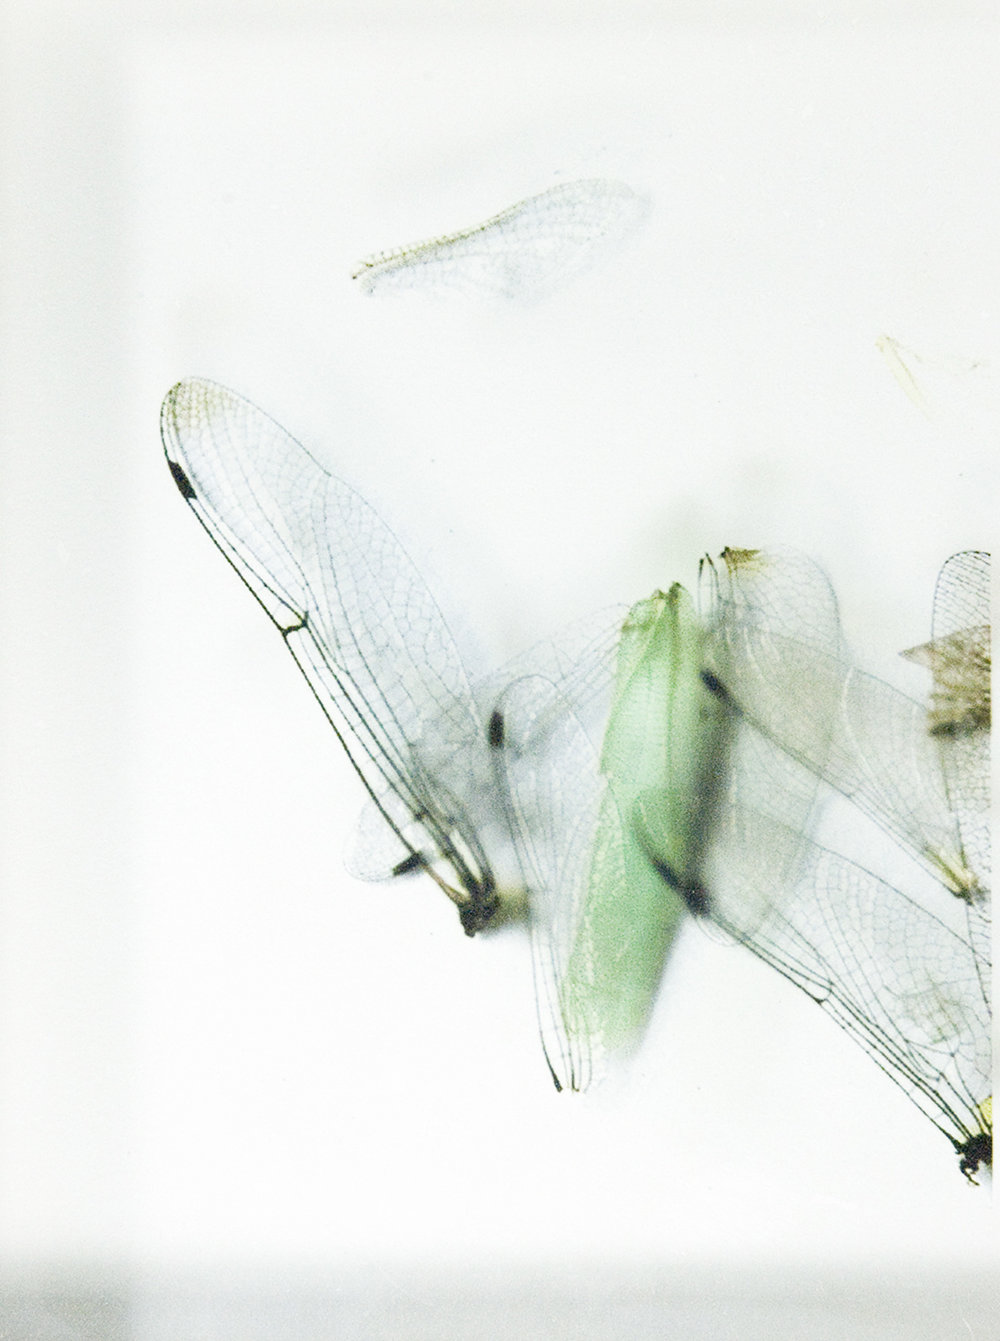 Icarus  , detail wings green, Ink Jet print on acetate, 3 x 5 inches, 2004